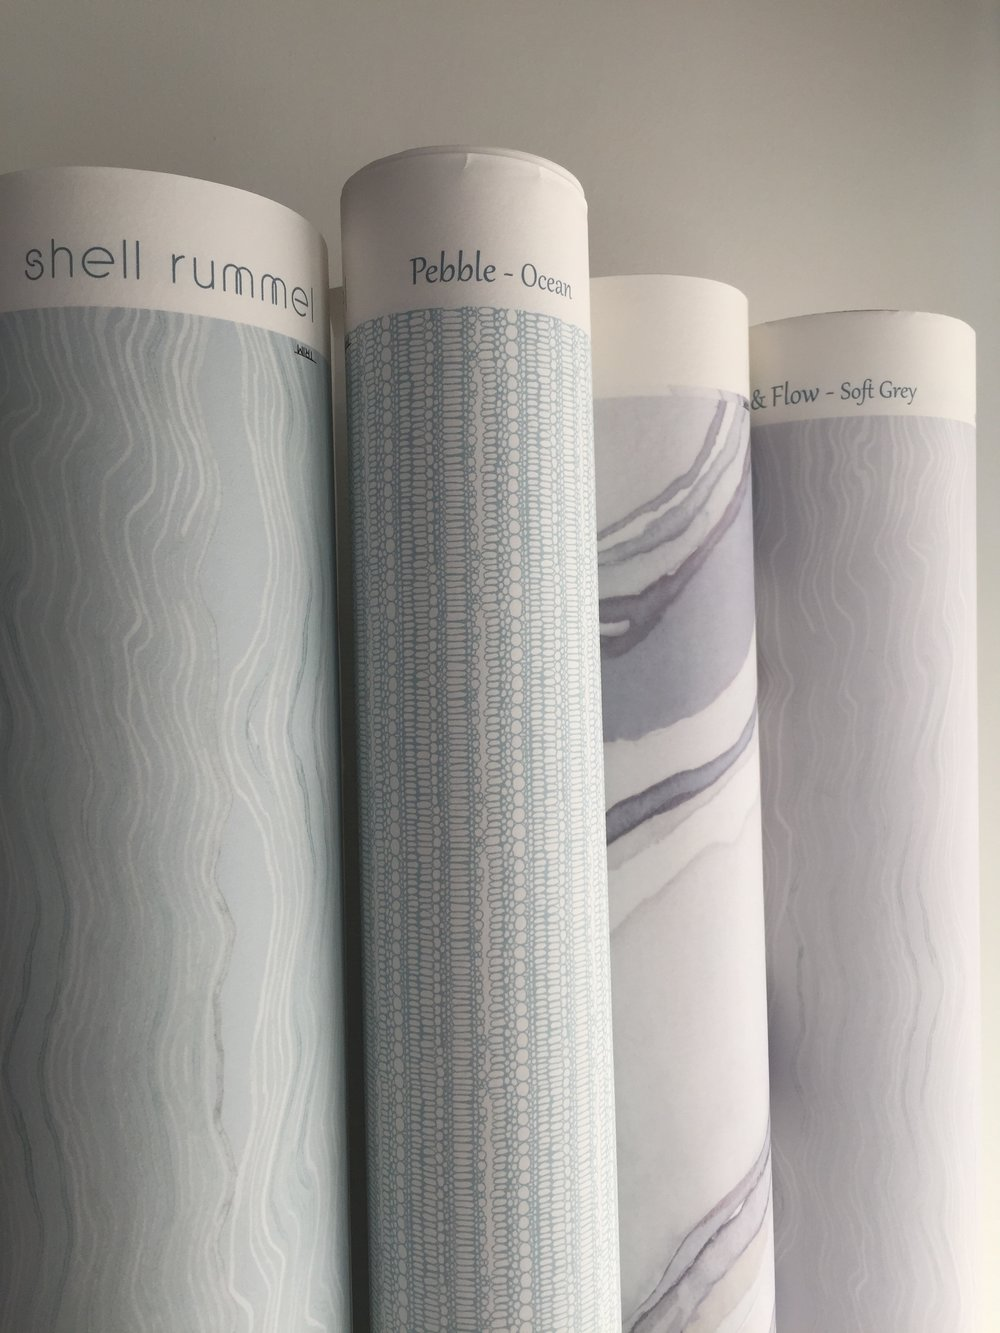 Shell Rummel Studio Collection wallpapers  Modern organic designs that elevate.